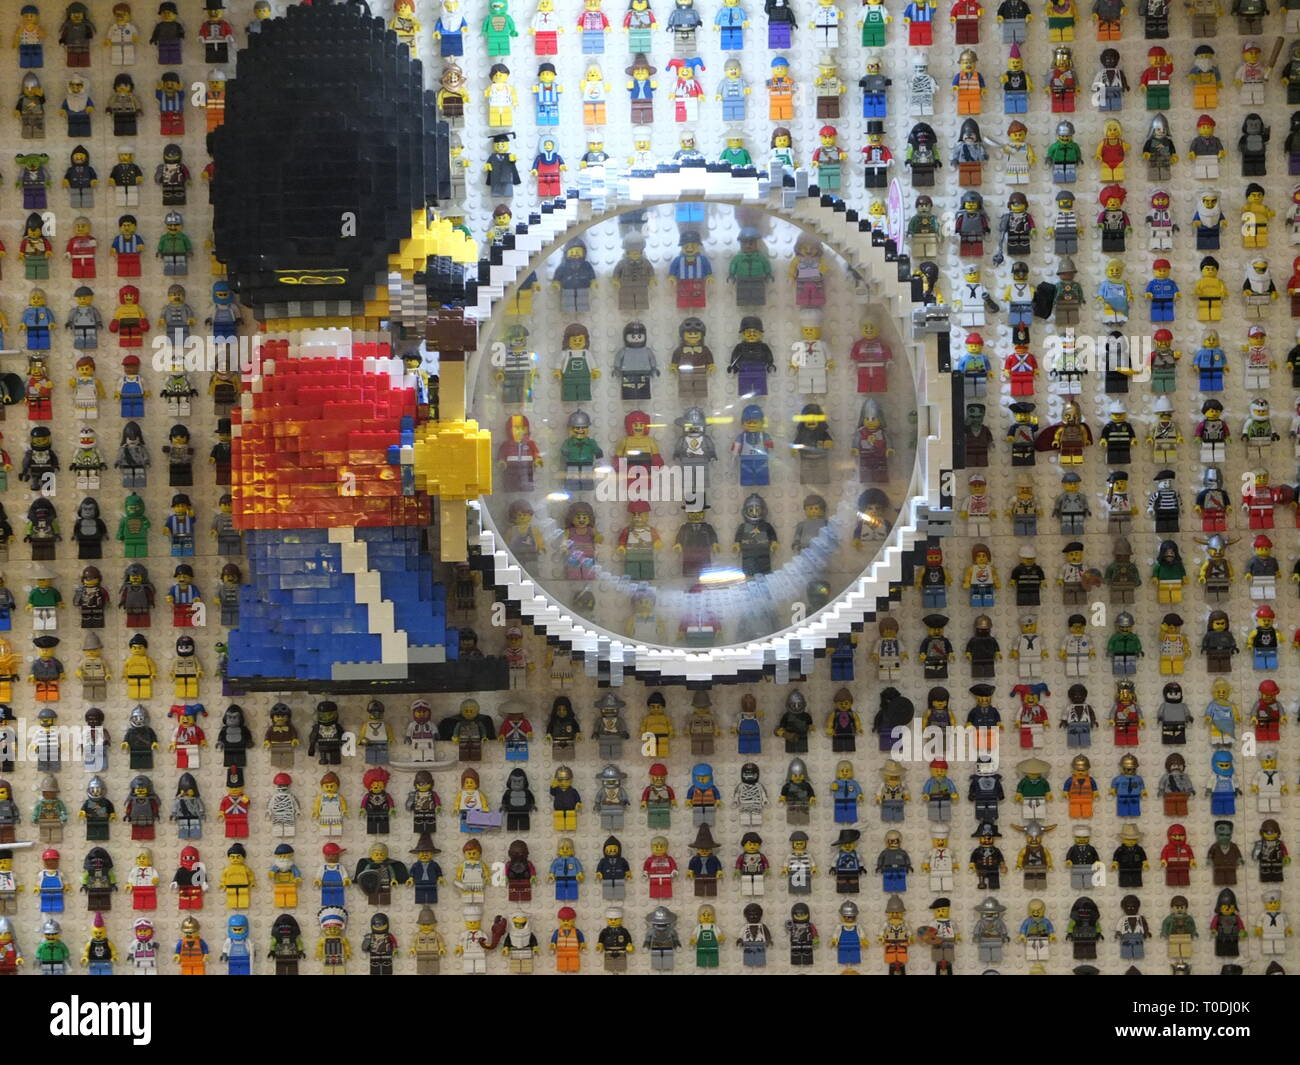 Lego figures on the wall in the reception area of the hotel at the LEGOLAND Windsor Resort UK Stock Photo